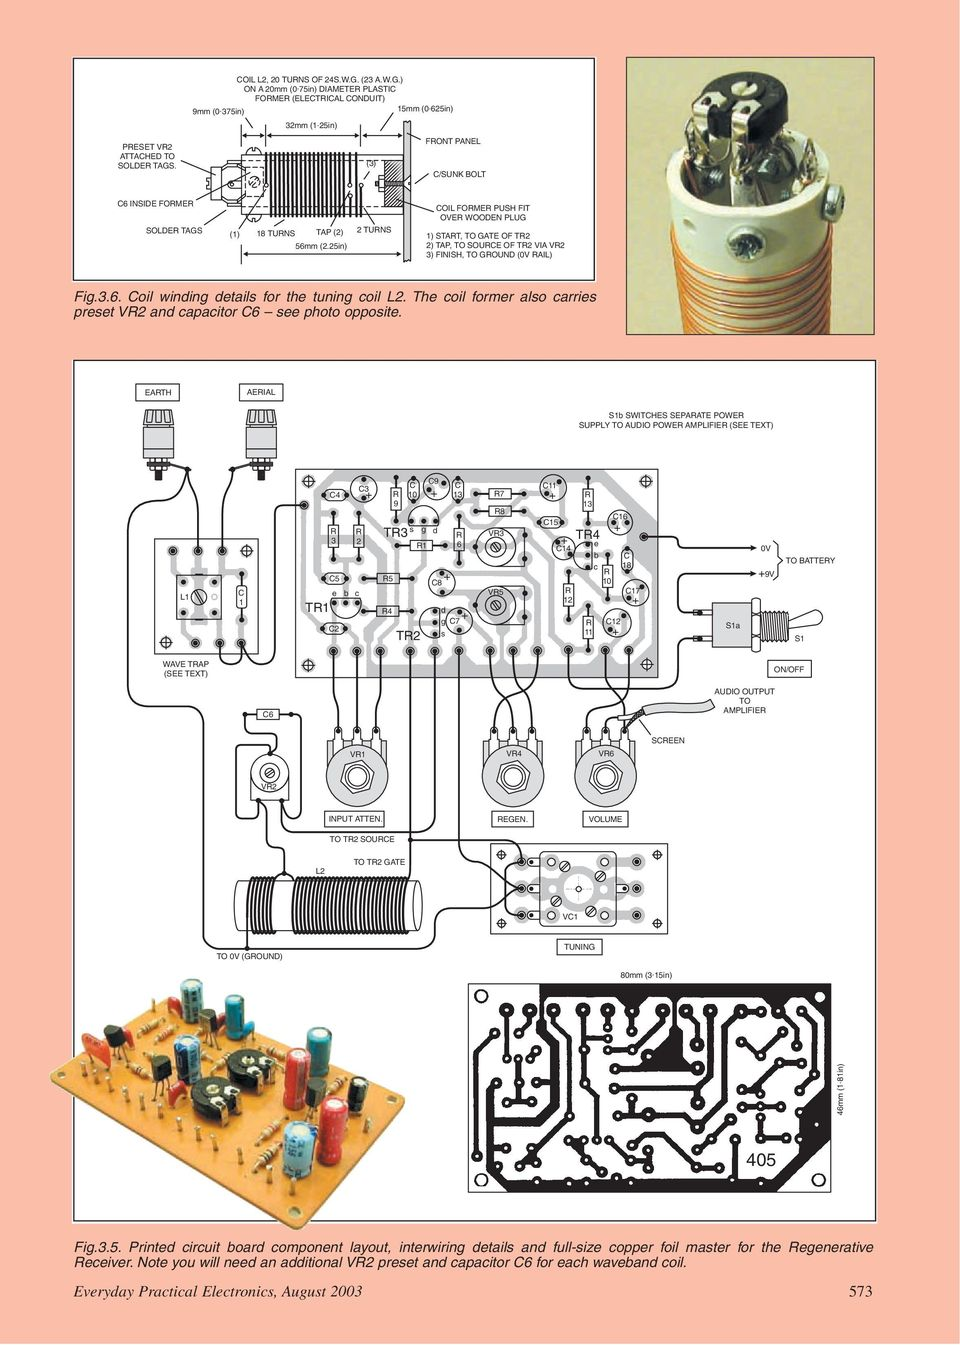 Practical Radio Circuits Pdf Download Image Bc549c Condenser Microphone Pre Amplifier Schematics Pc 25in 2 Tuns Coil Fome Push Fit Ove Wooden Plug 1 Stat To